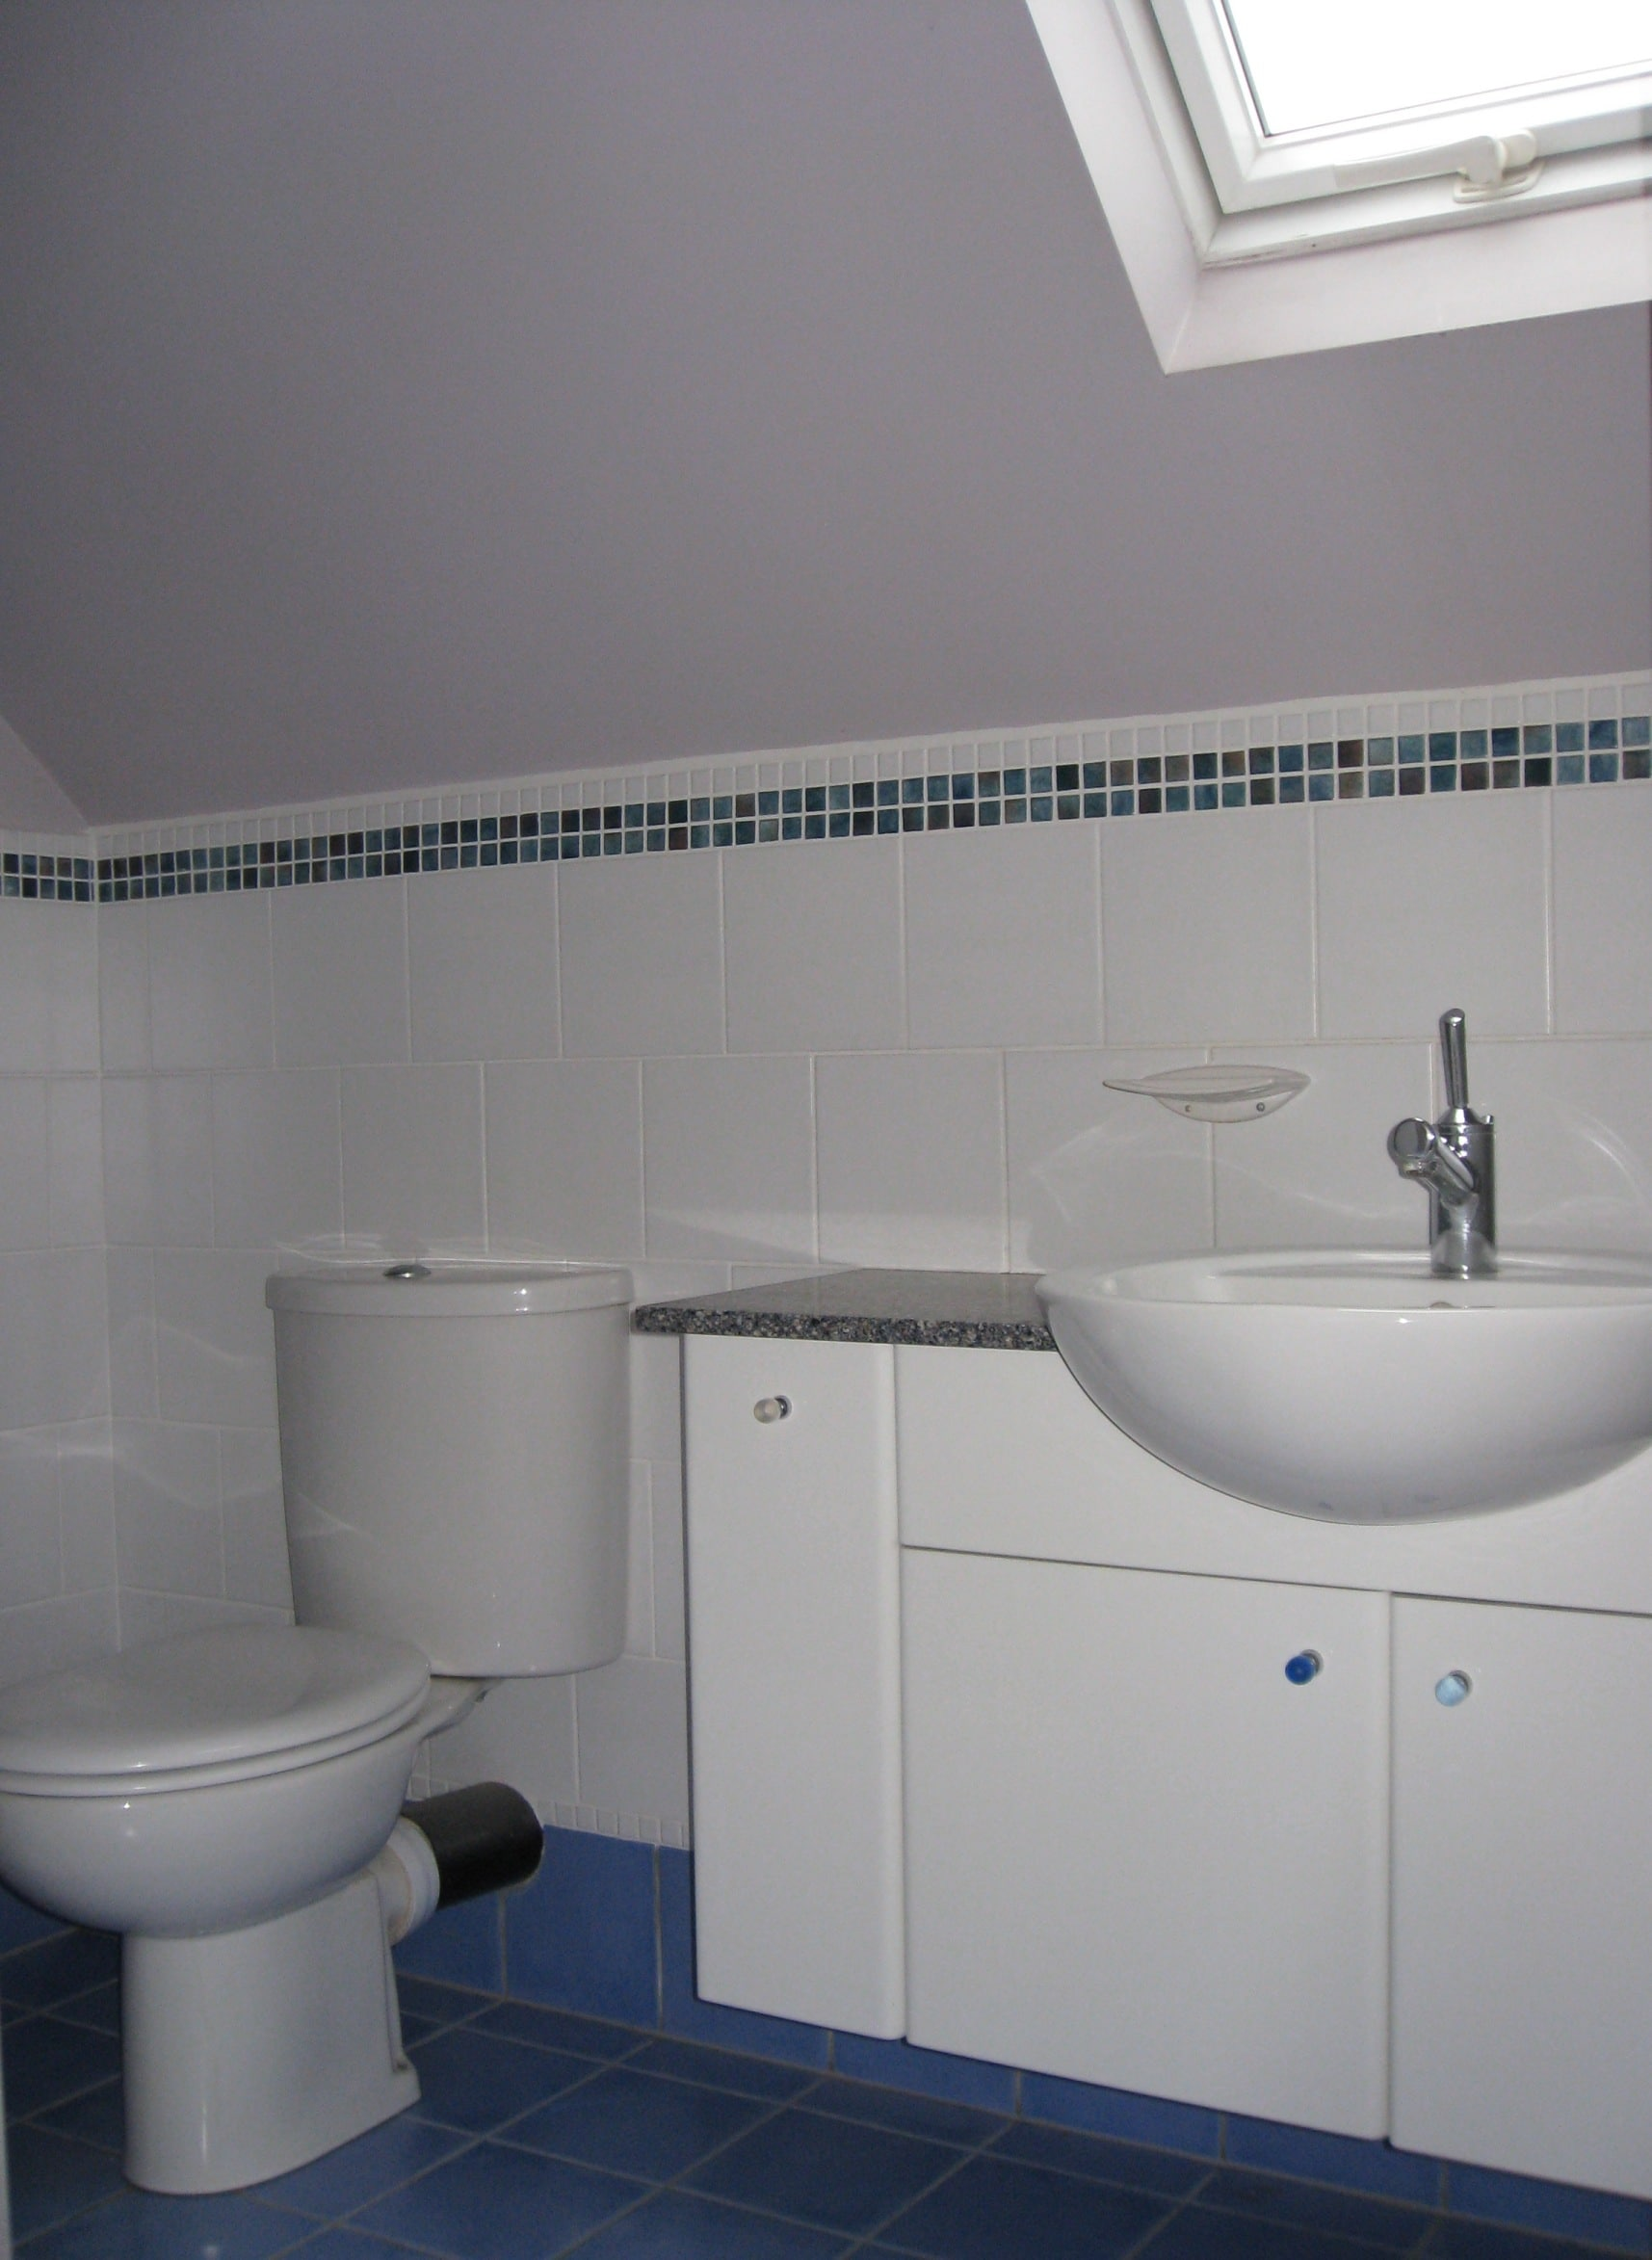 Bathroom Suites Manchester Bathrooms Transforming Homes For Over 30 Years Expert Builders